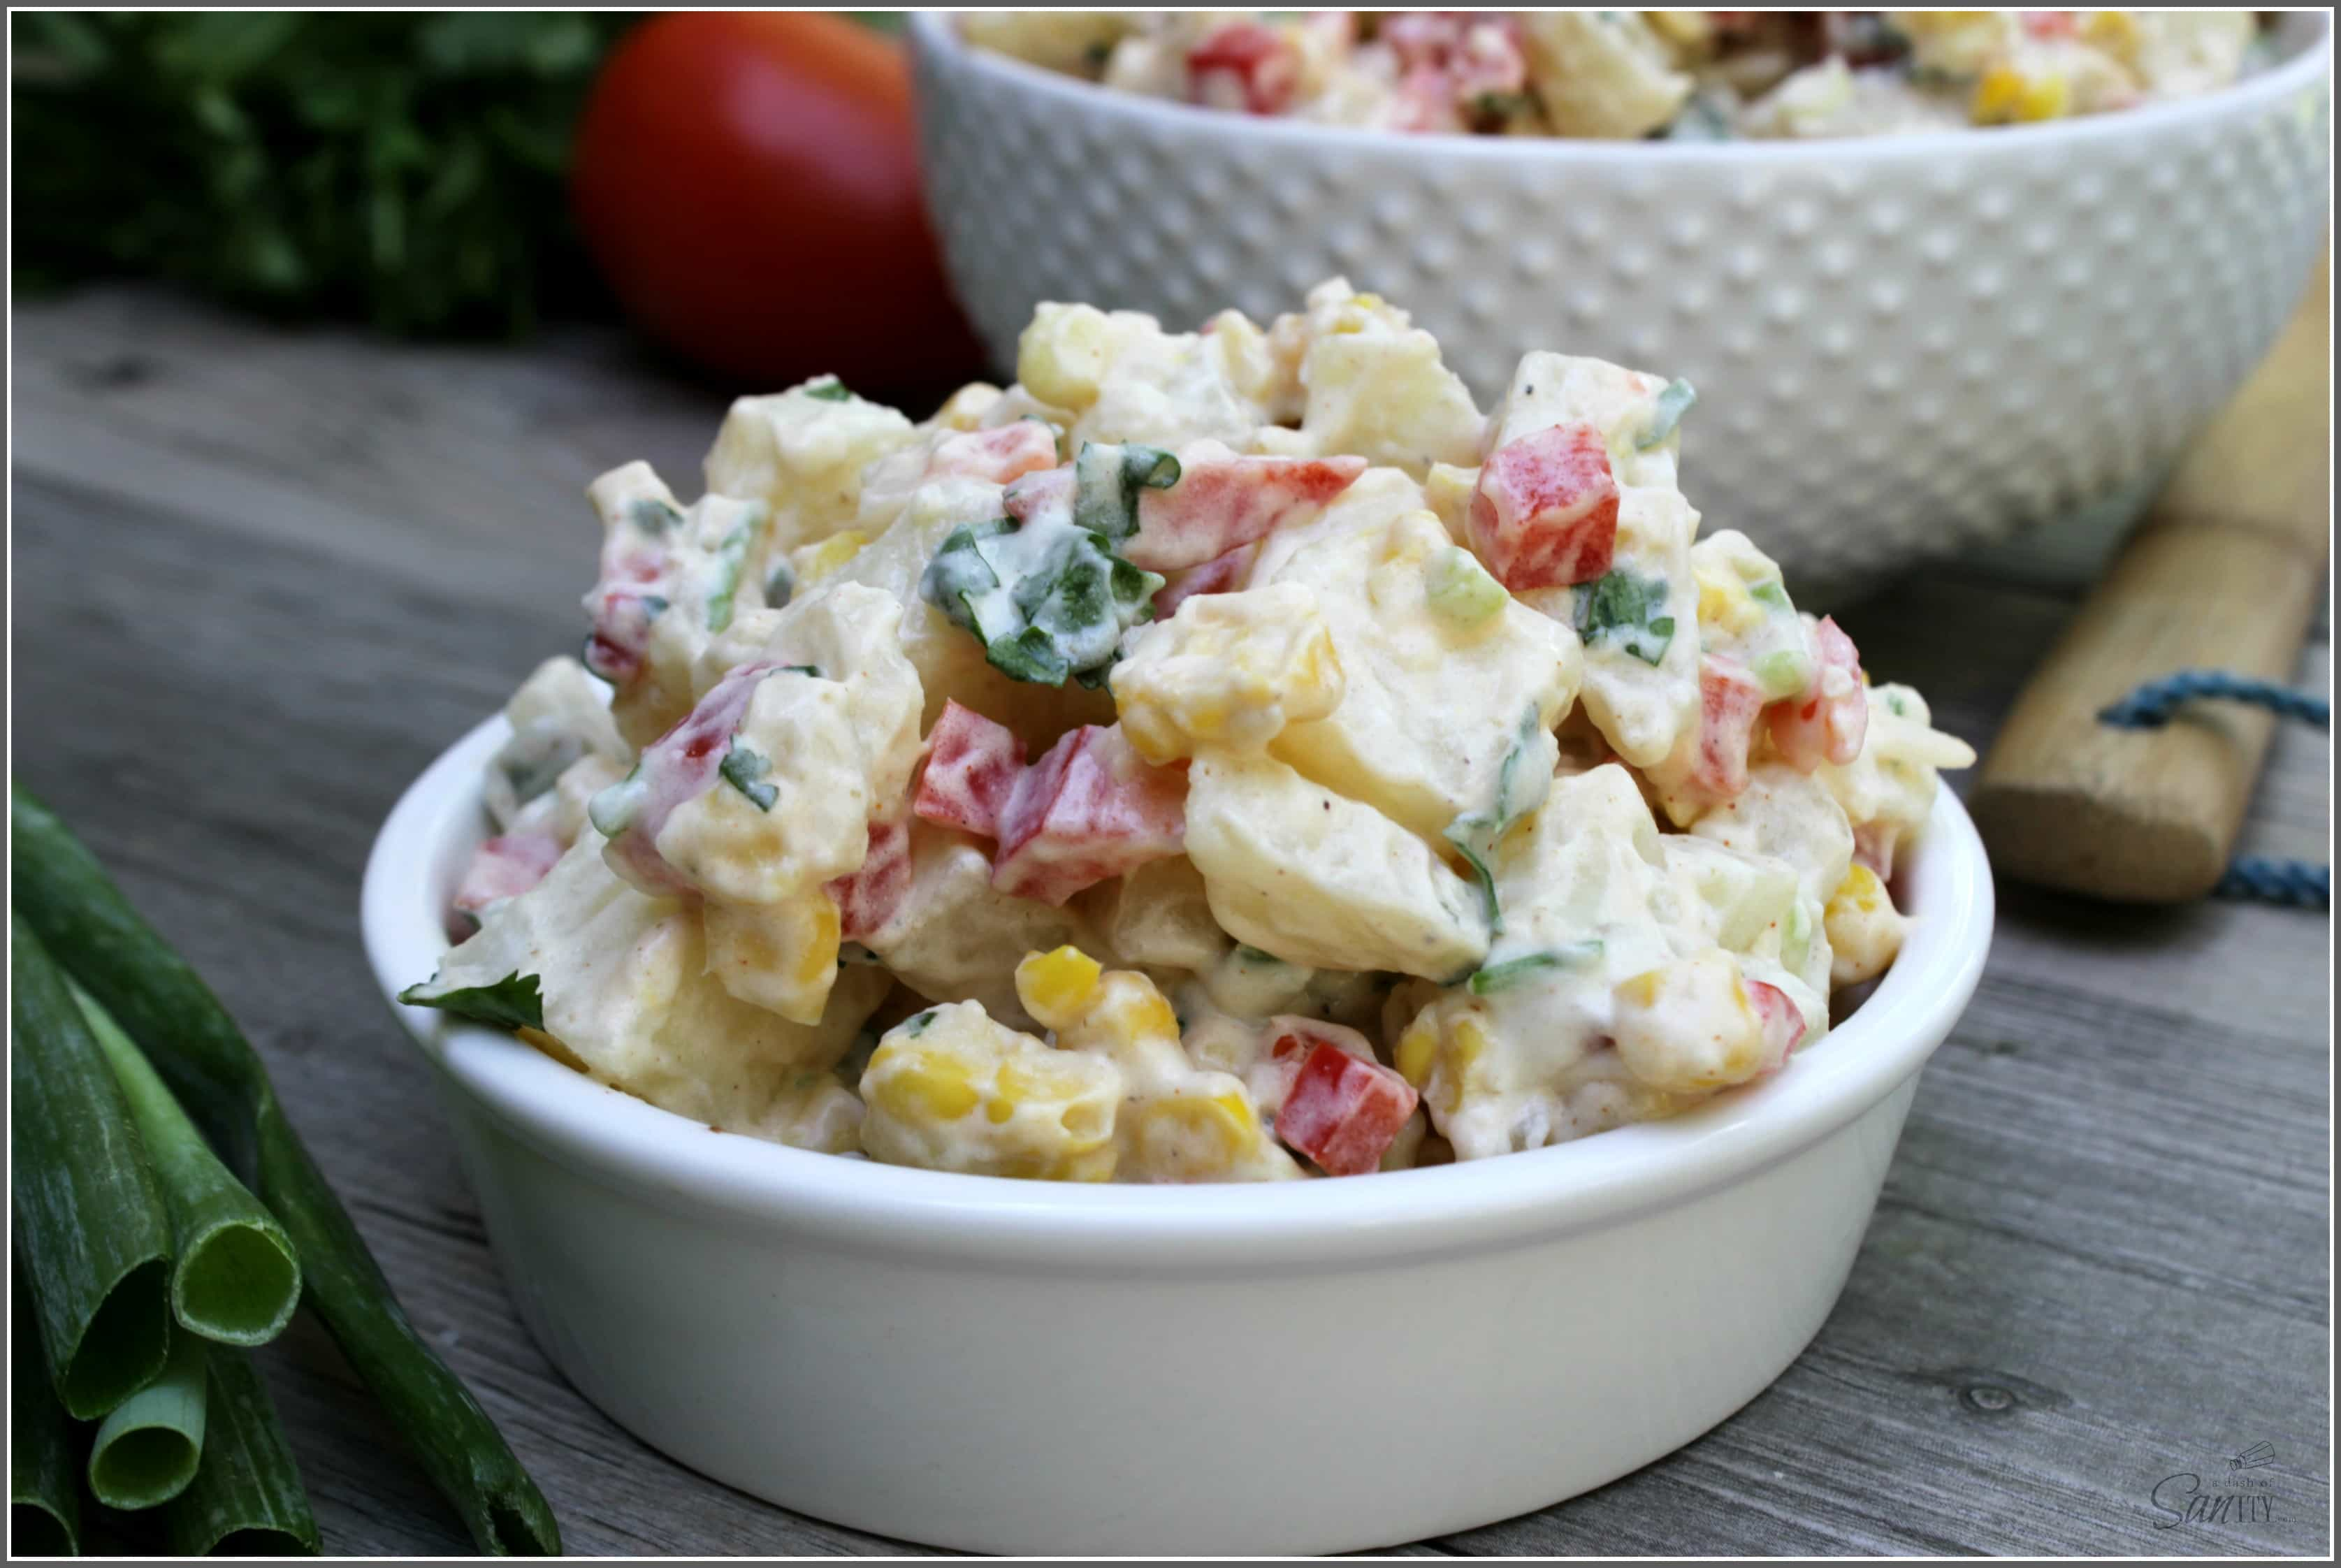 Southwestern Pasta Salad is light and refreshing. Made with fresh veggies and full of flavor, this will convert even those who claim to hate potato salad.